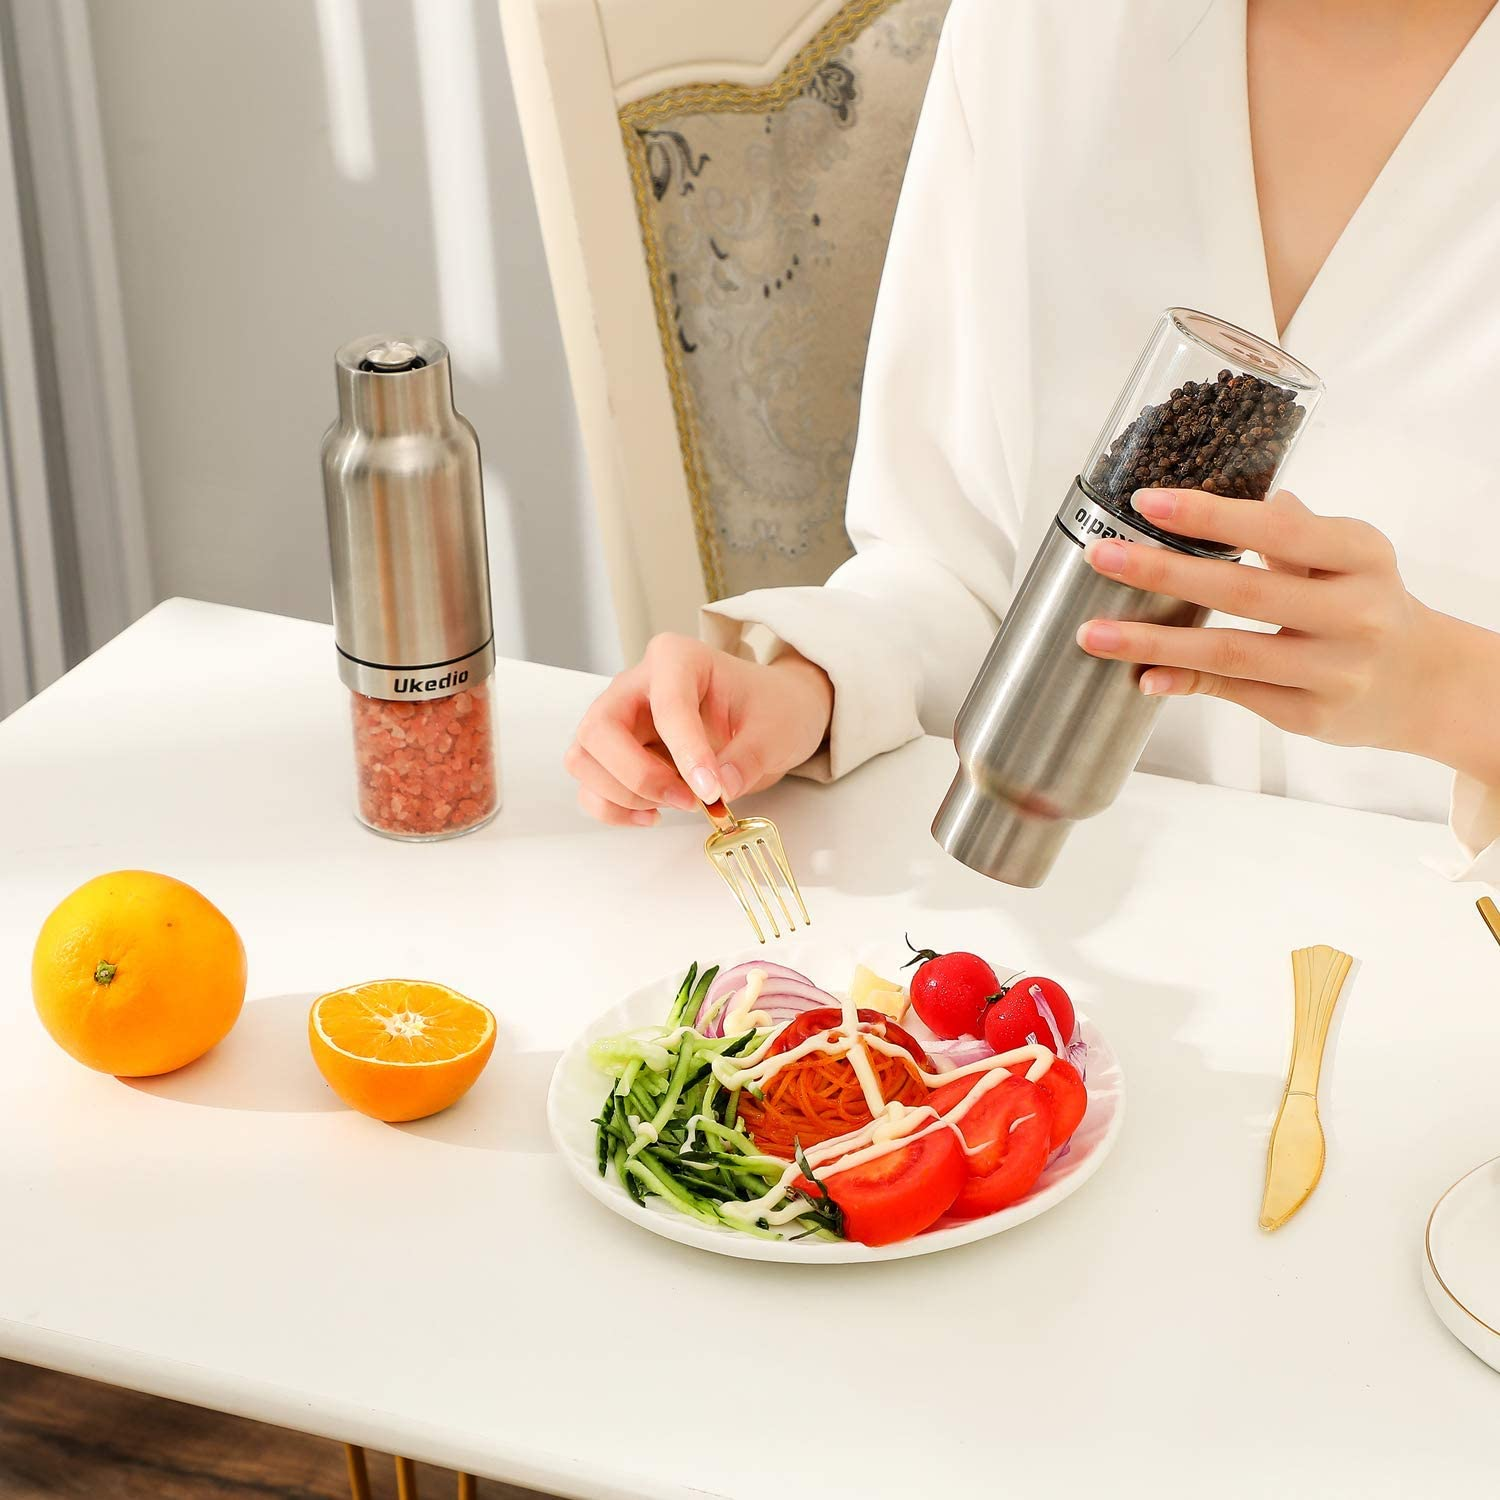 Stainless Steel with One Hand Operation Automatic Salt /& Pepper Mill Sets Adjustable Coarseness Grinder Pack of 2 Mills Ukedio Electric Gravity Pepper and Salt Grinder Set